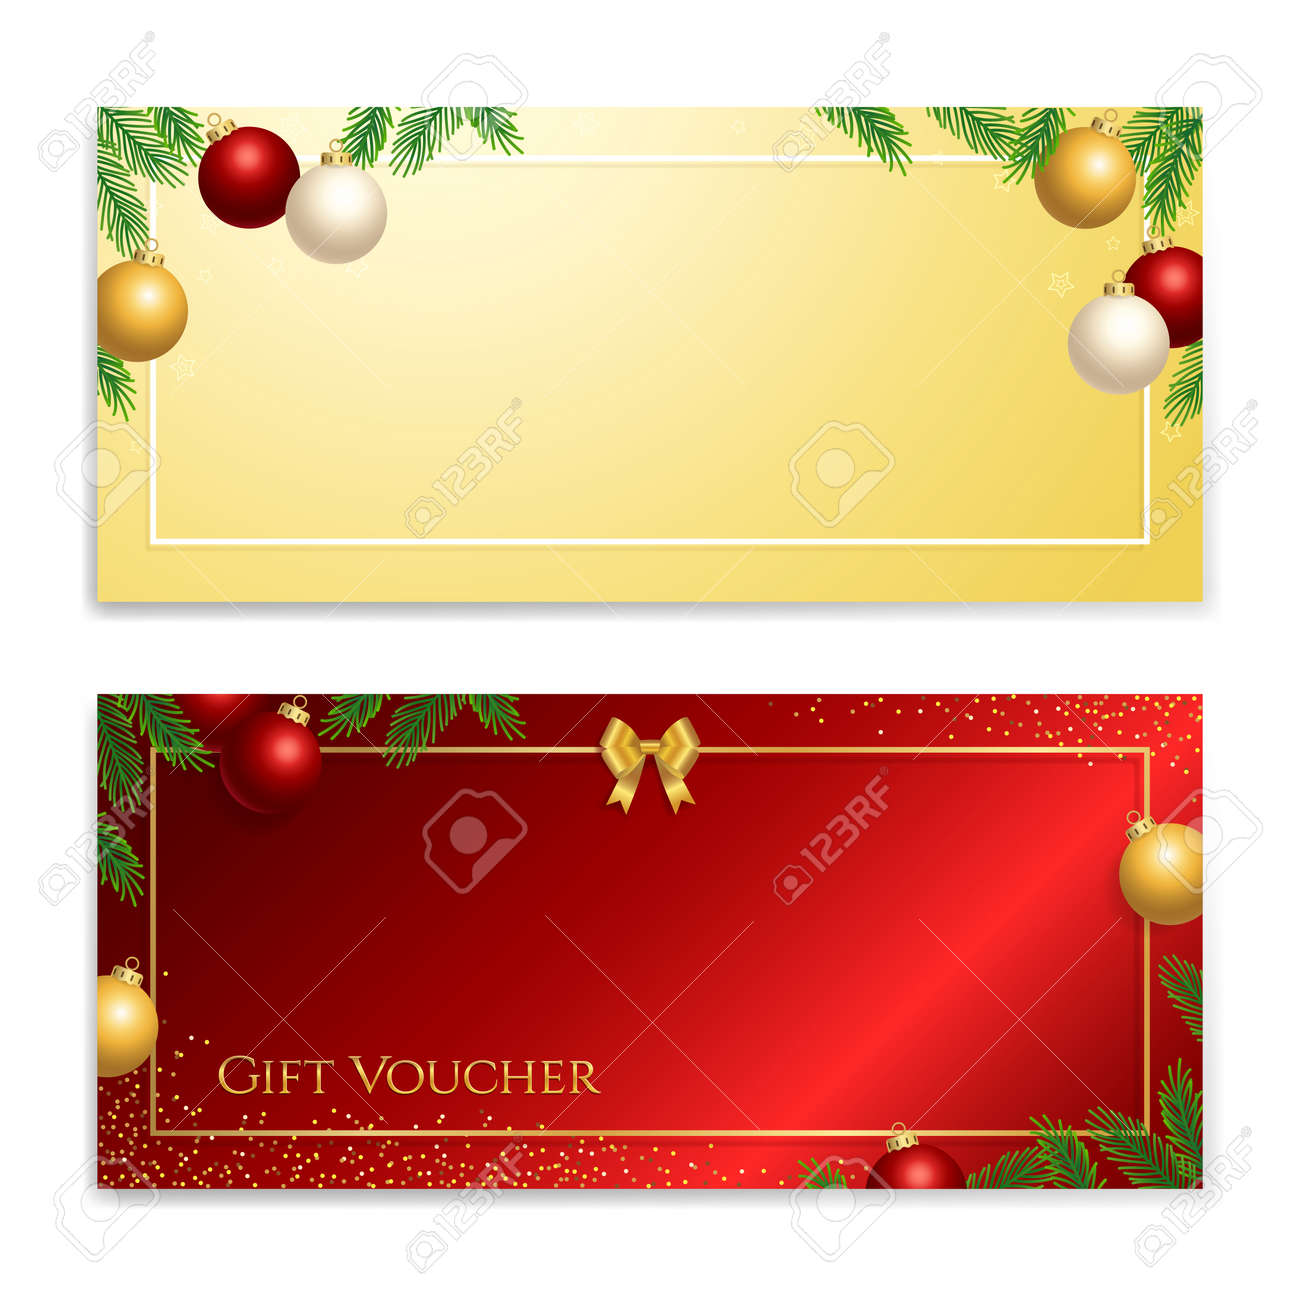 Christmas and new year gift certificate, voucher, gift card or cash coupon template in vector format - 160158681